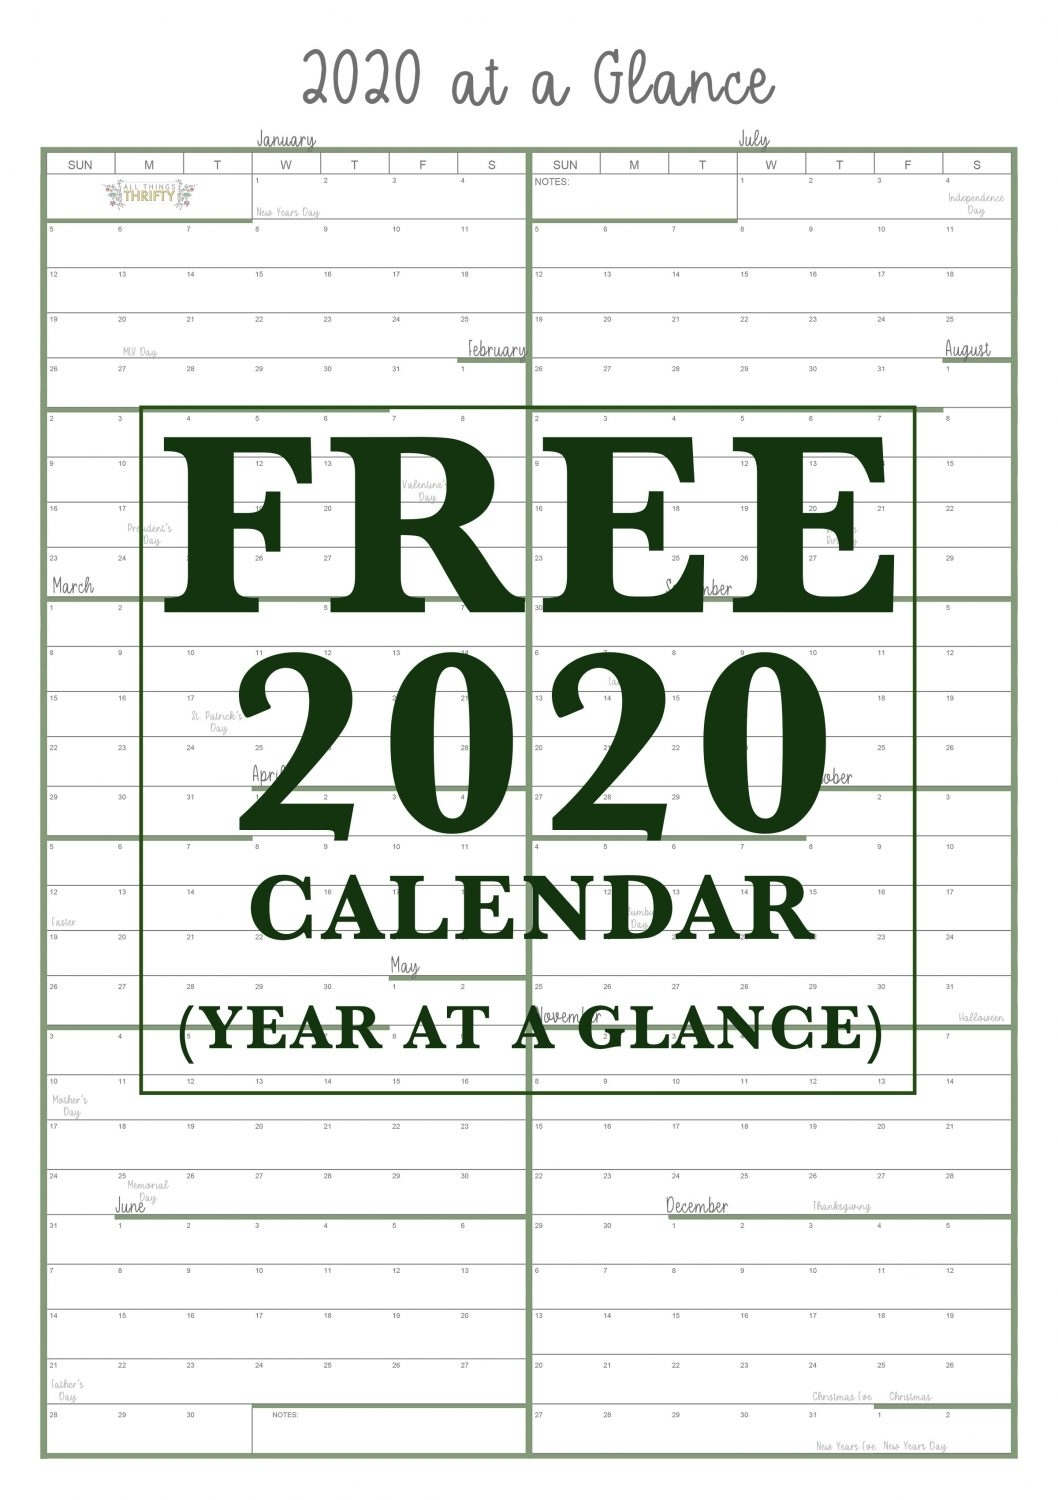 Year At A Glance Free Printable Calendar | All Things Thrifty in 2020 Calender At A Glance Free